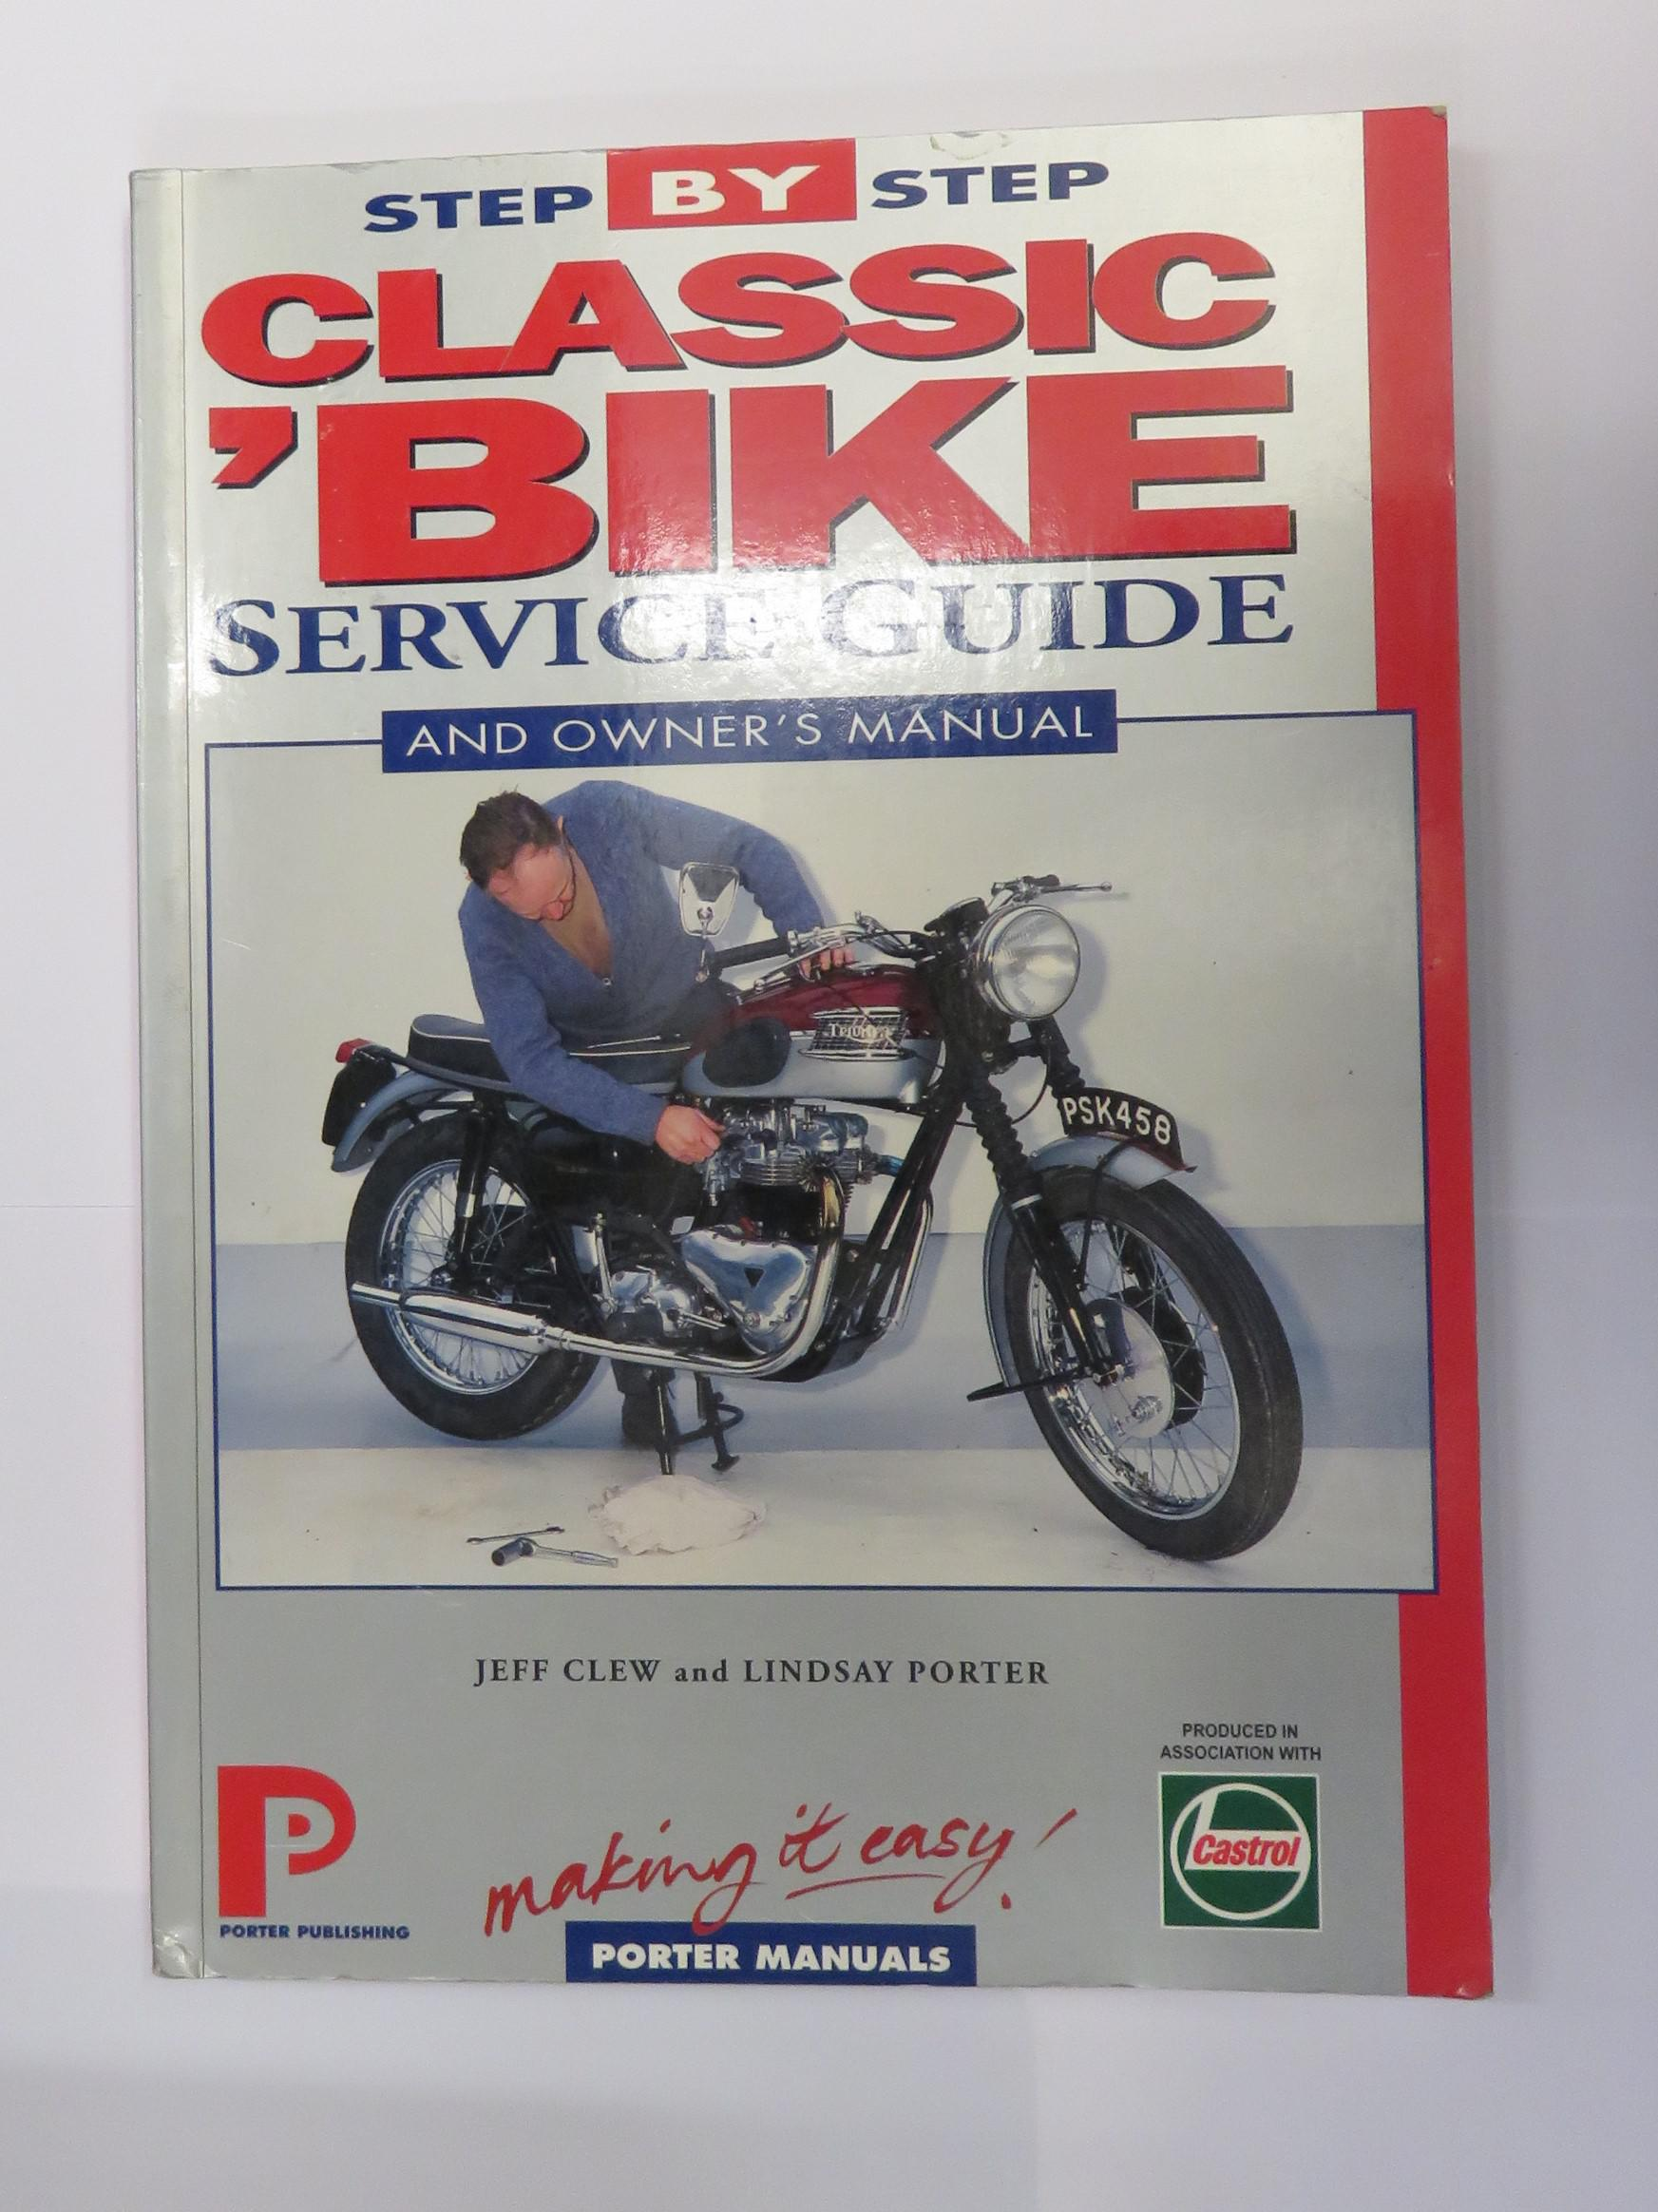 Classic 'Bike Service Guide and Owner's Manual